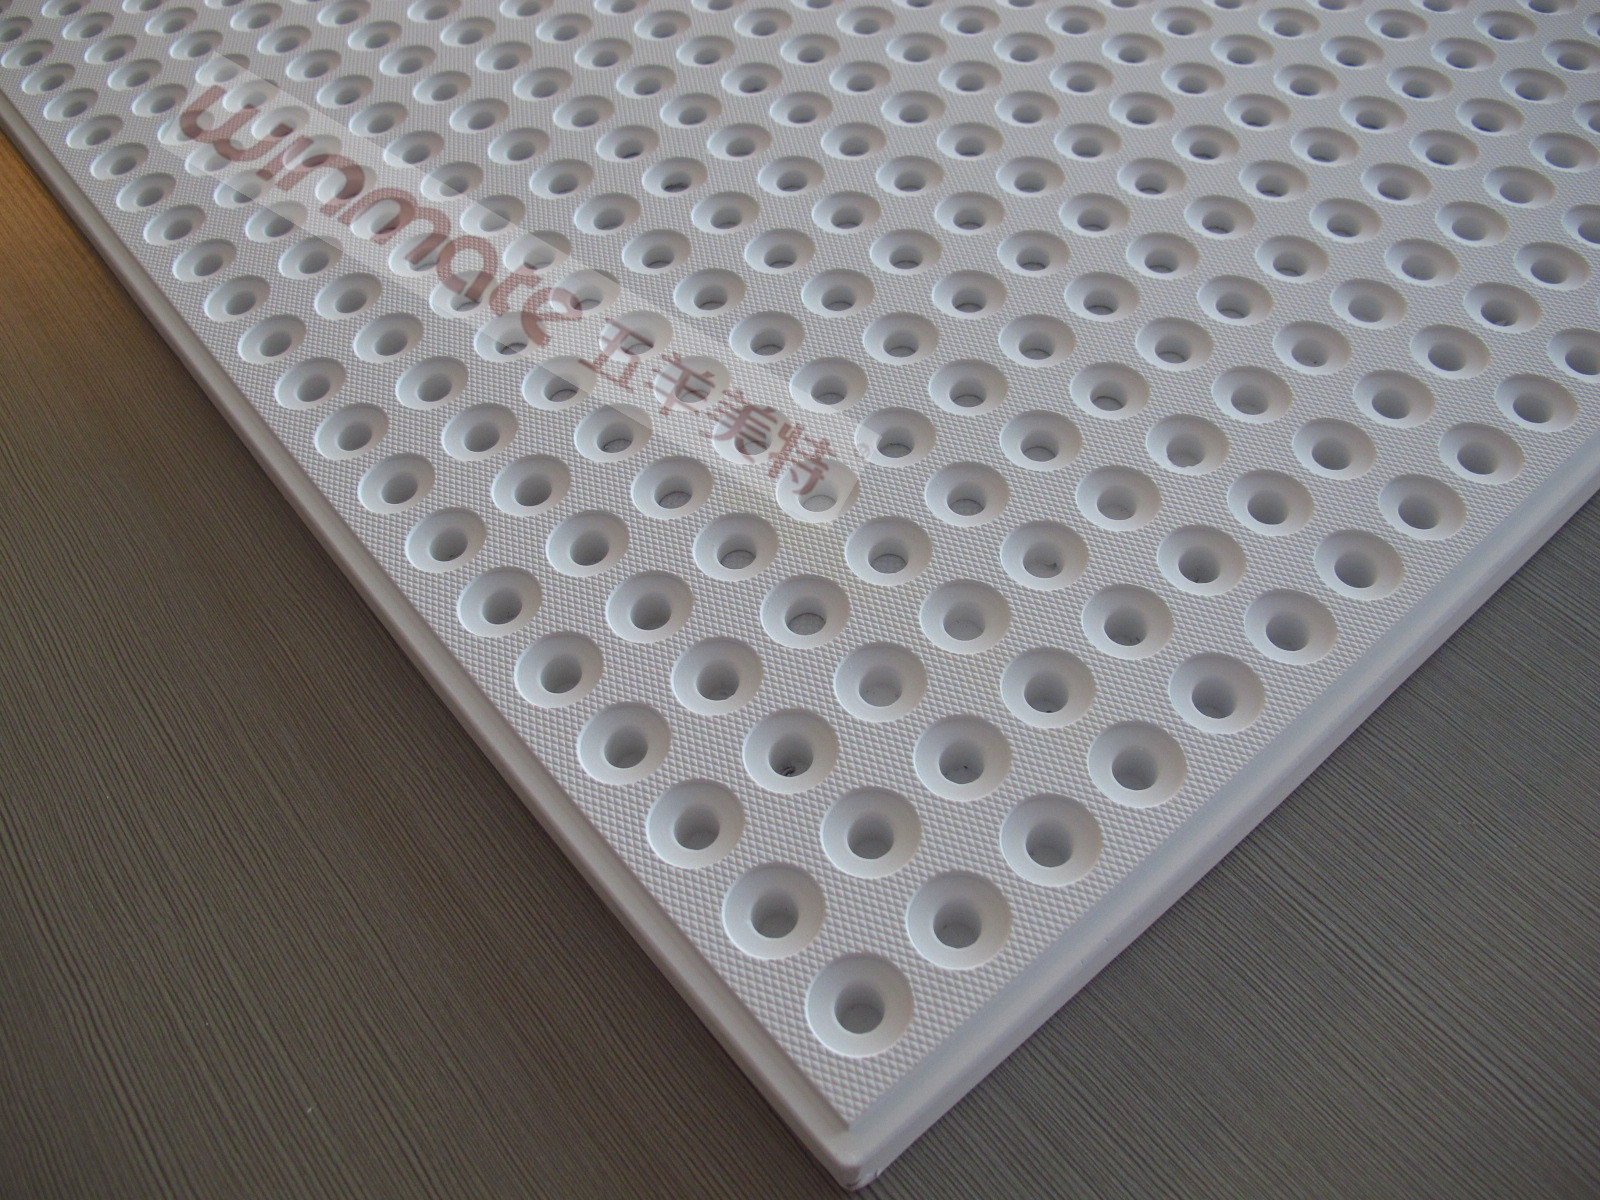 Fiber Glass Gypsum Plaster Ceiling Board 8825 600 1200mm